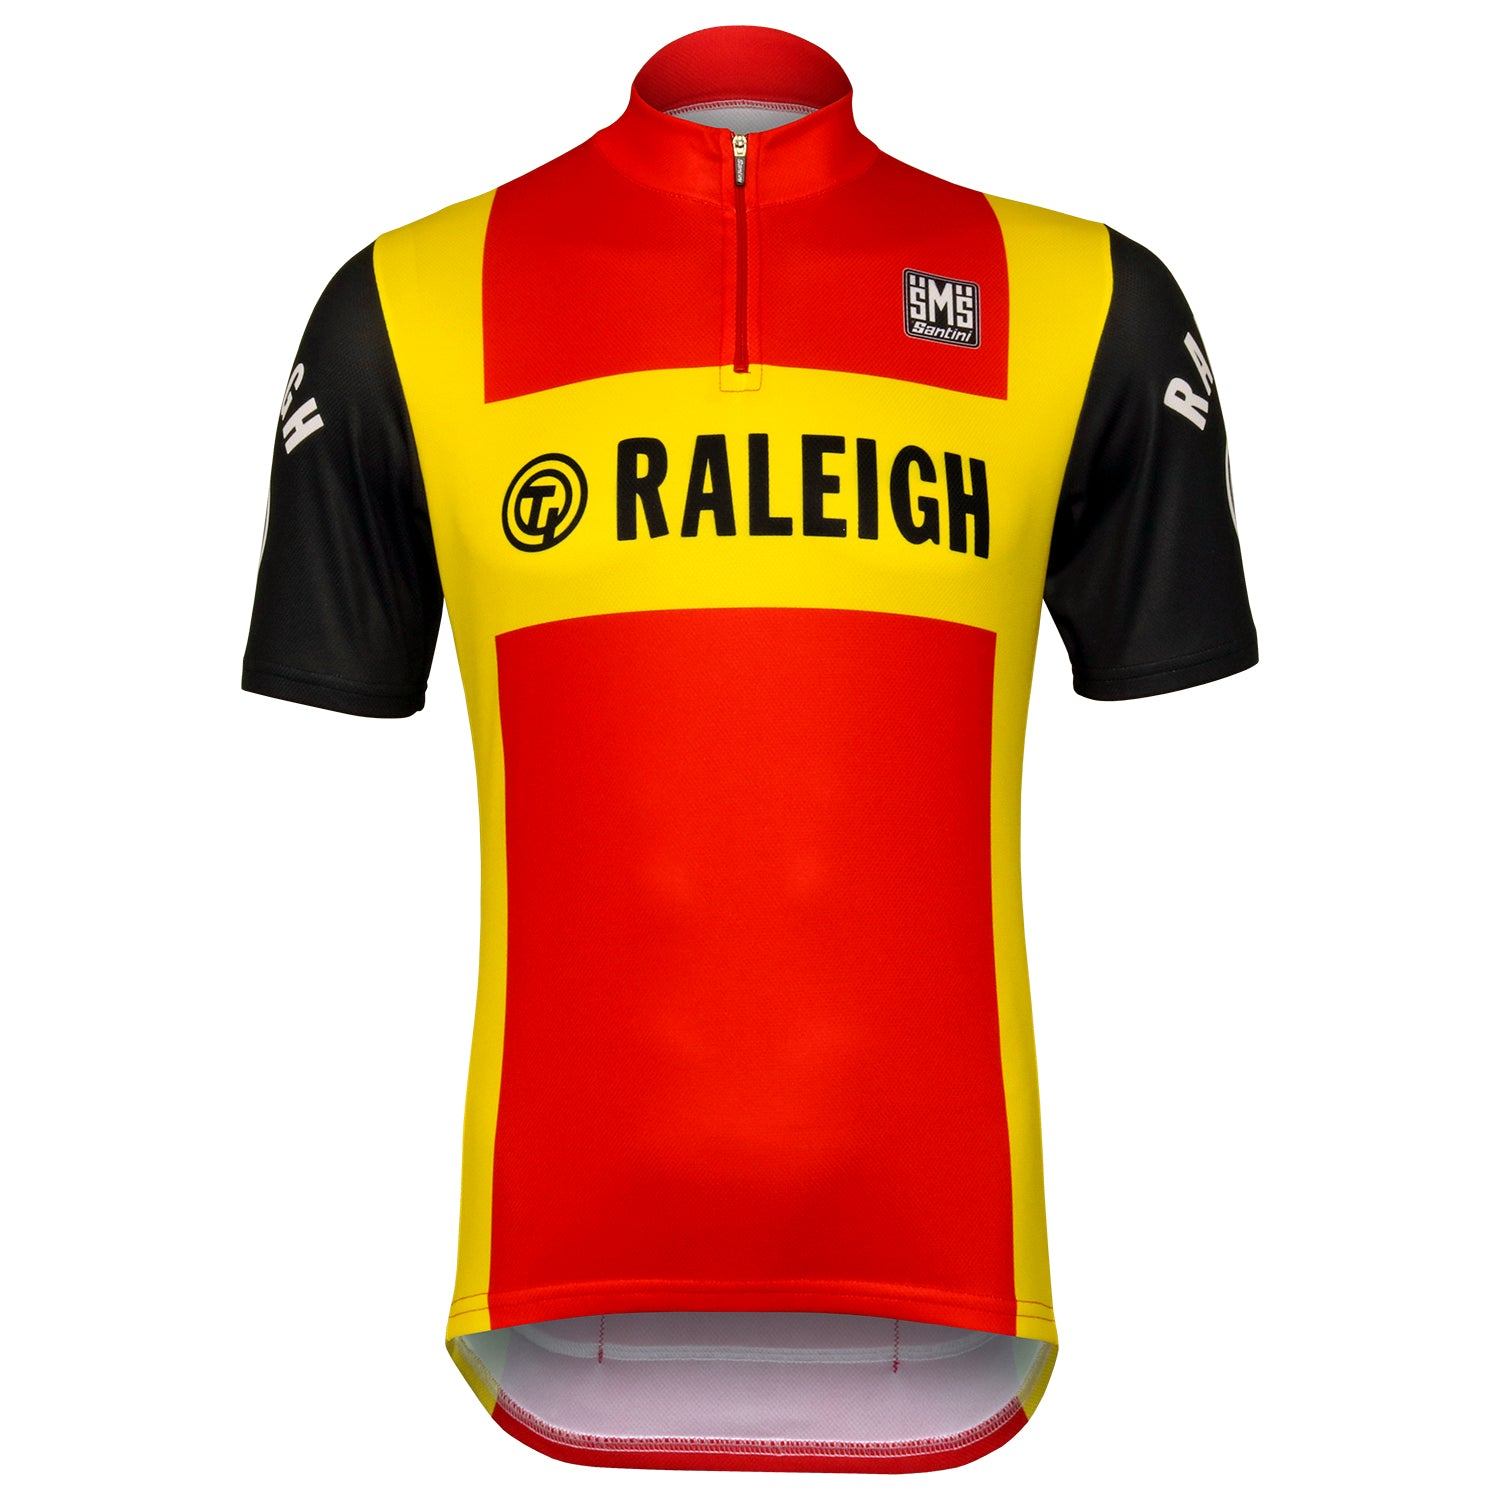 TI Raleigh Retro Jersey